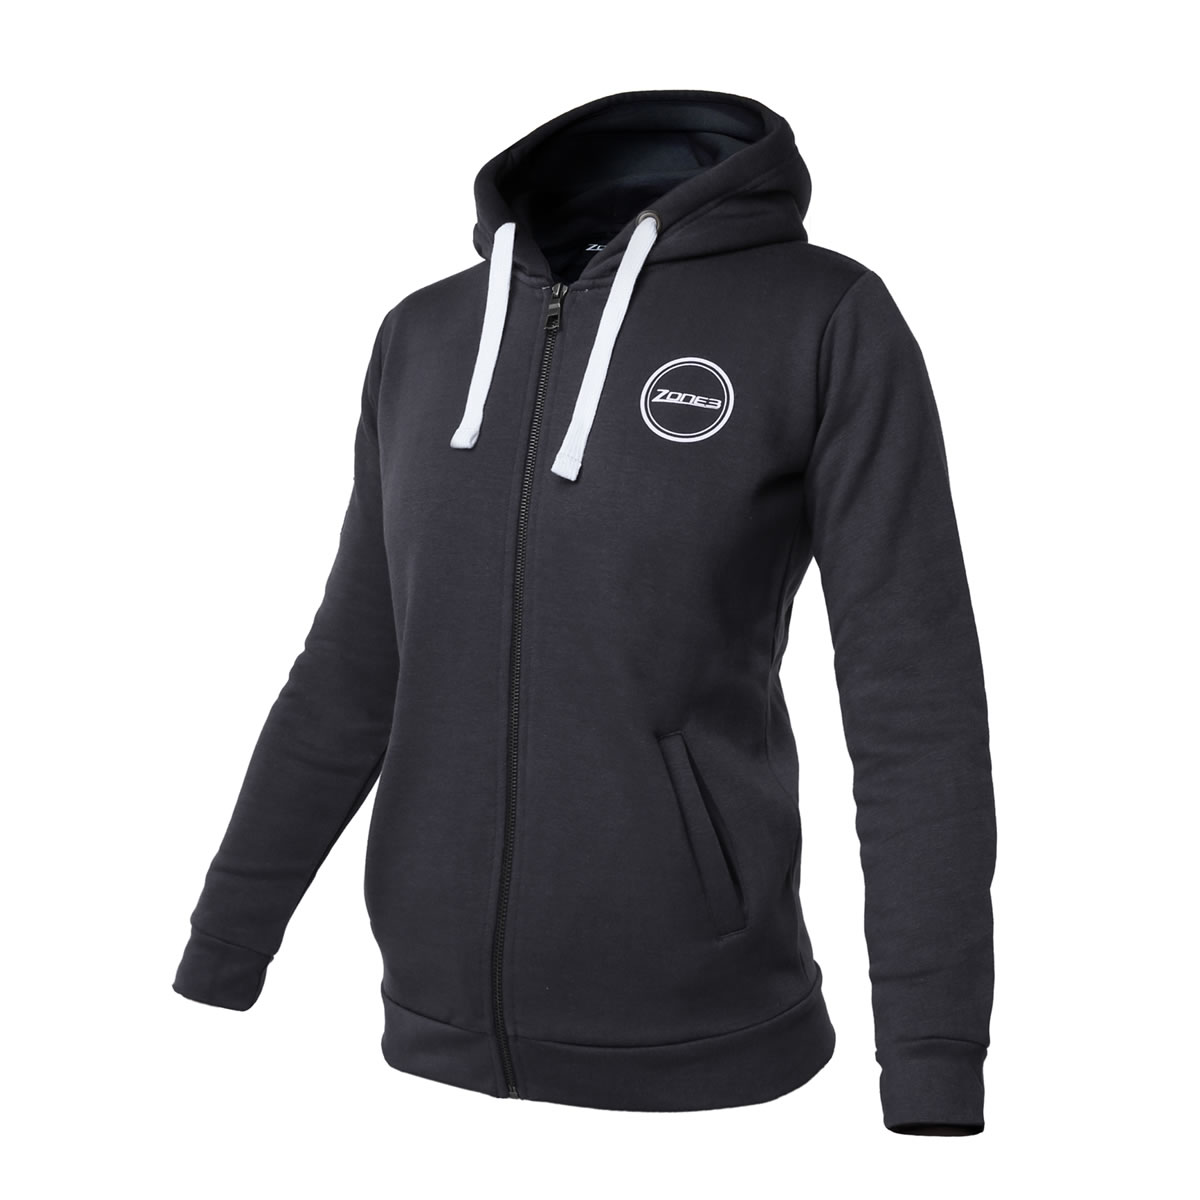 Charcoal Plush Cotton Hoodie Herren - Zone 3 - zm16599